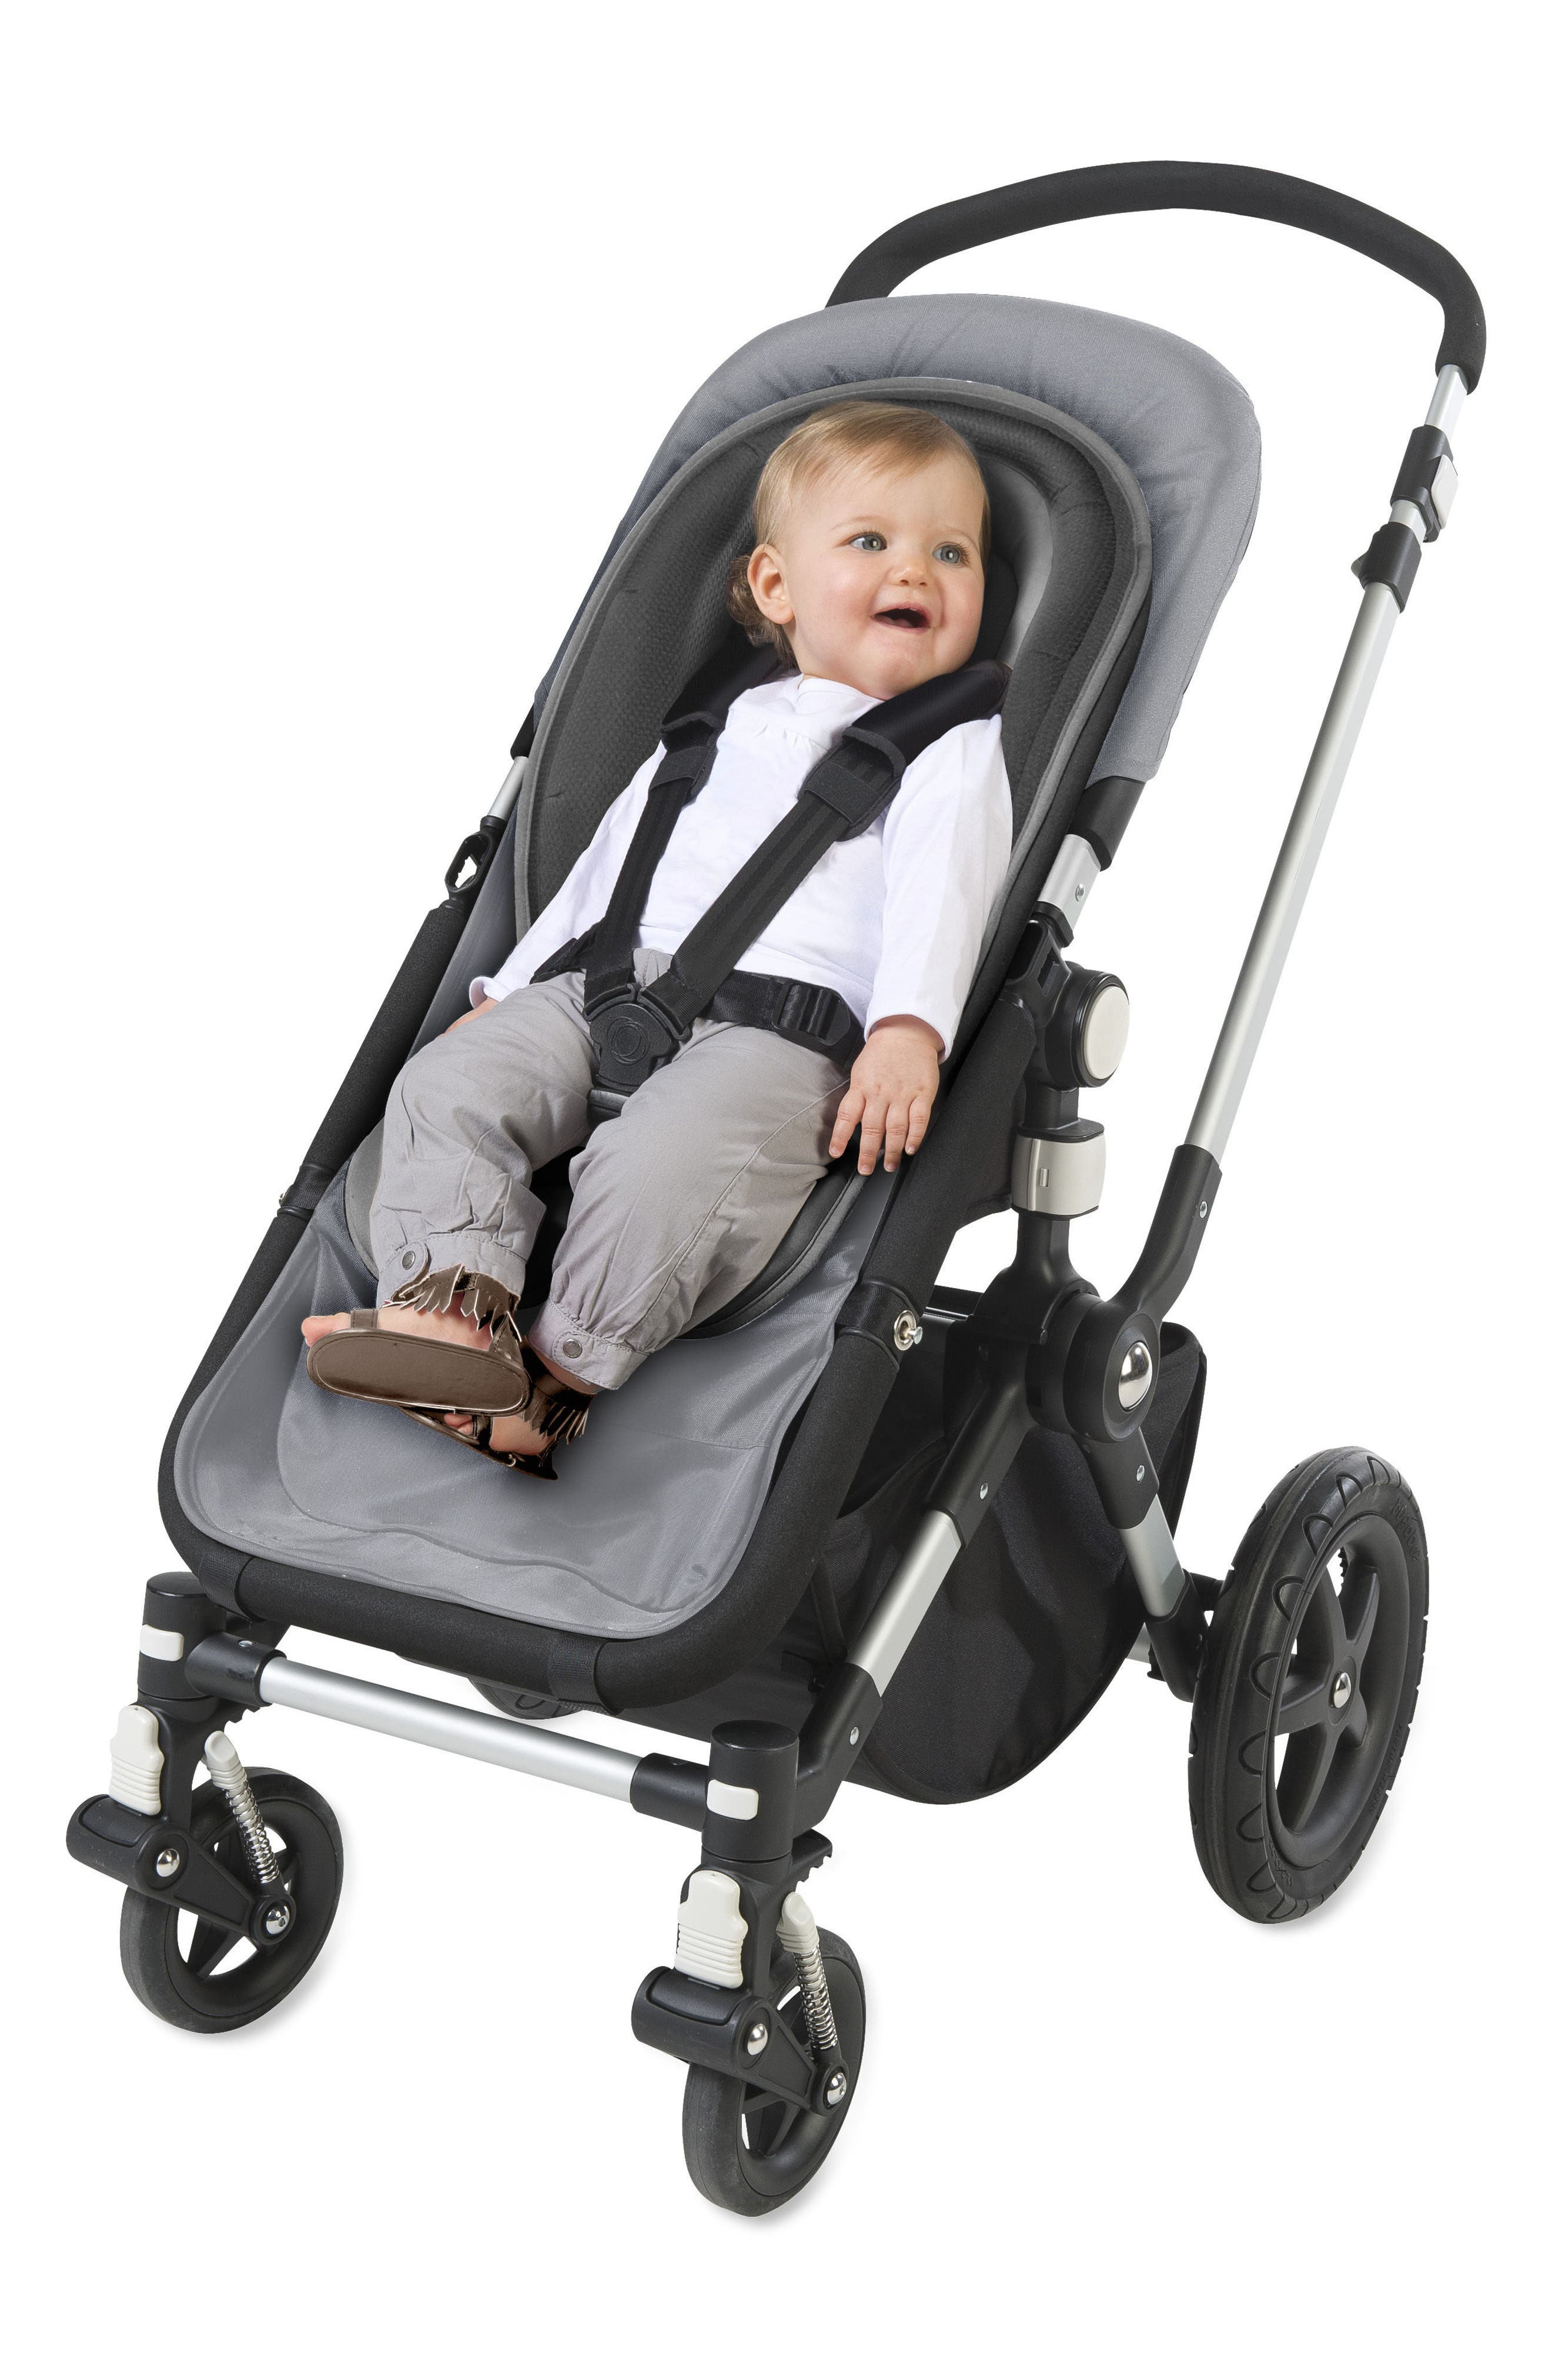 Cosycushion 6+ Support Stroller Cushion,                             Alternate thumbnail 3, color,                             001